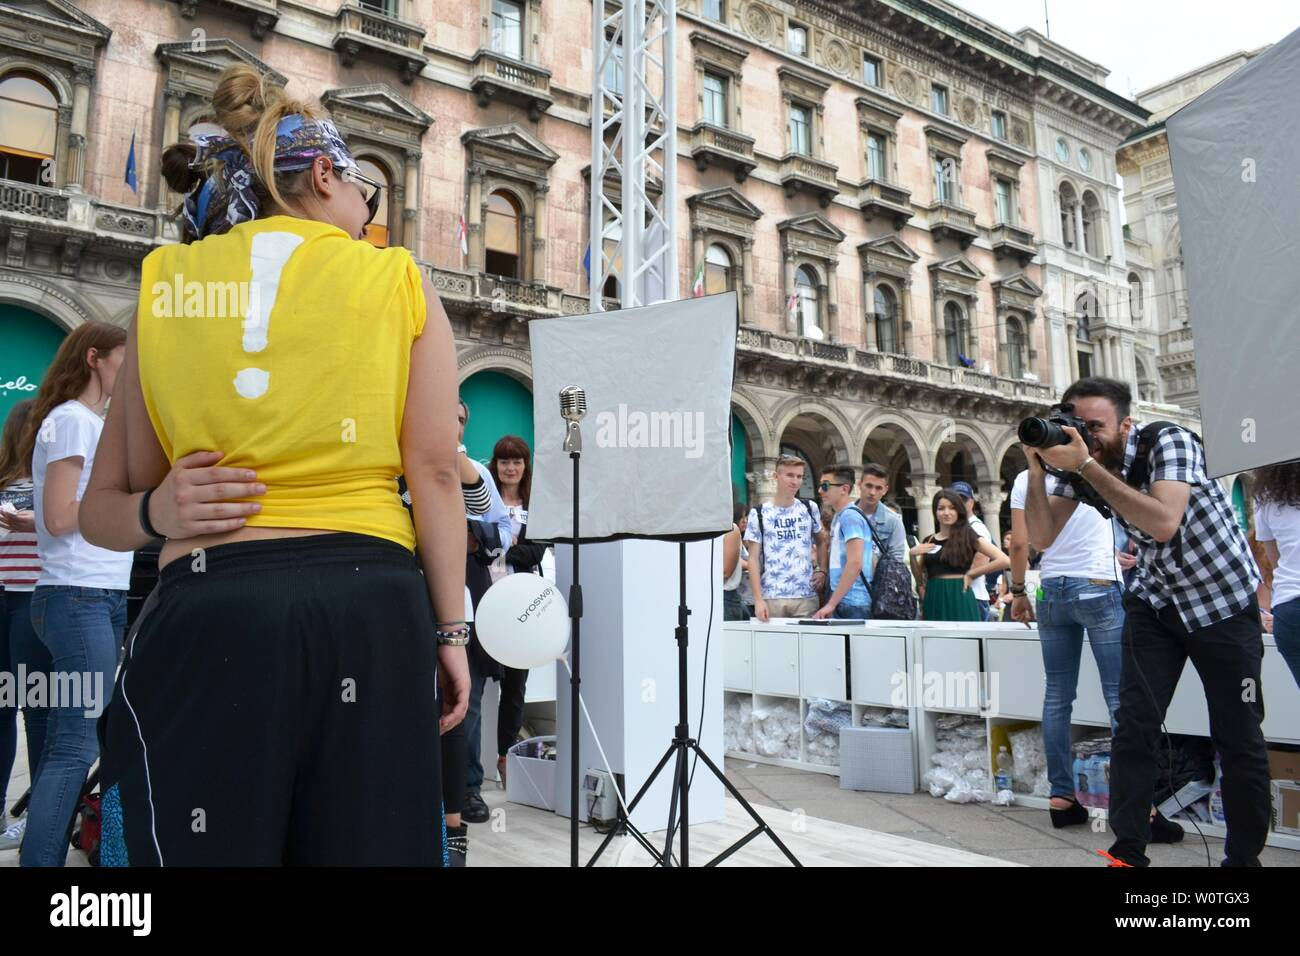 """Milan, Italy - June 9, 2016:  People on outdoors fun photo set """"Posa per Brosway"""" during """"Radio Italia live al concerto"""" event at piazza Duomo. Stock Photo"""